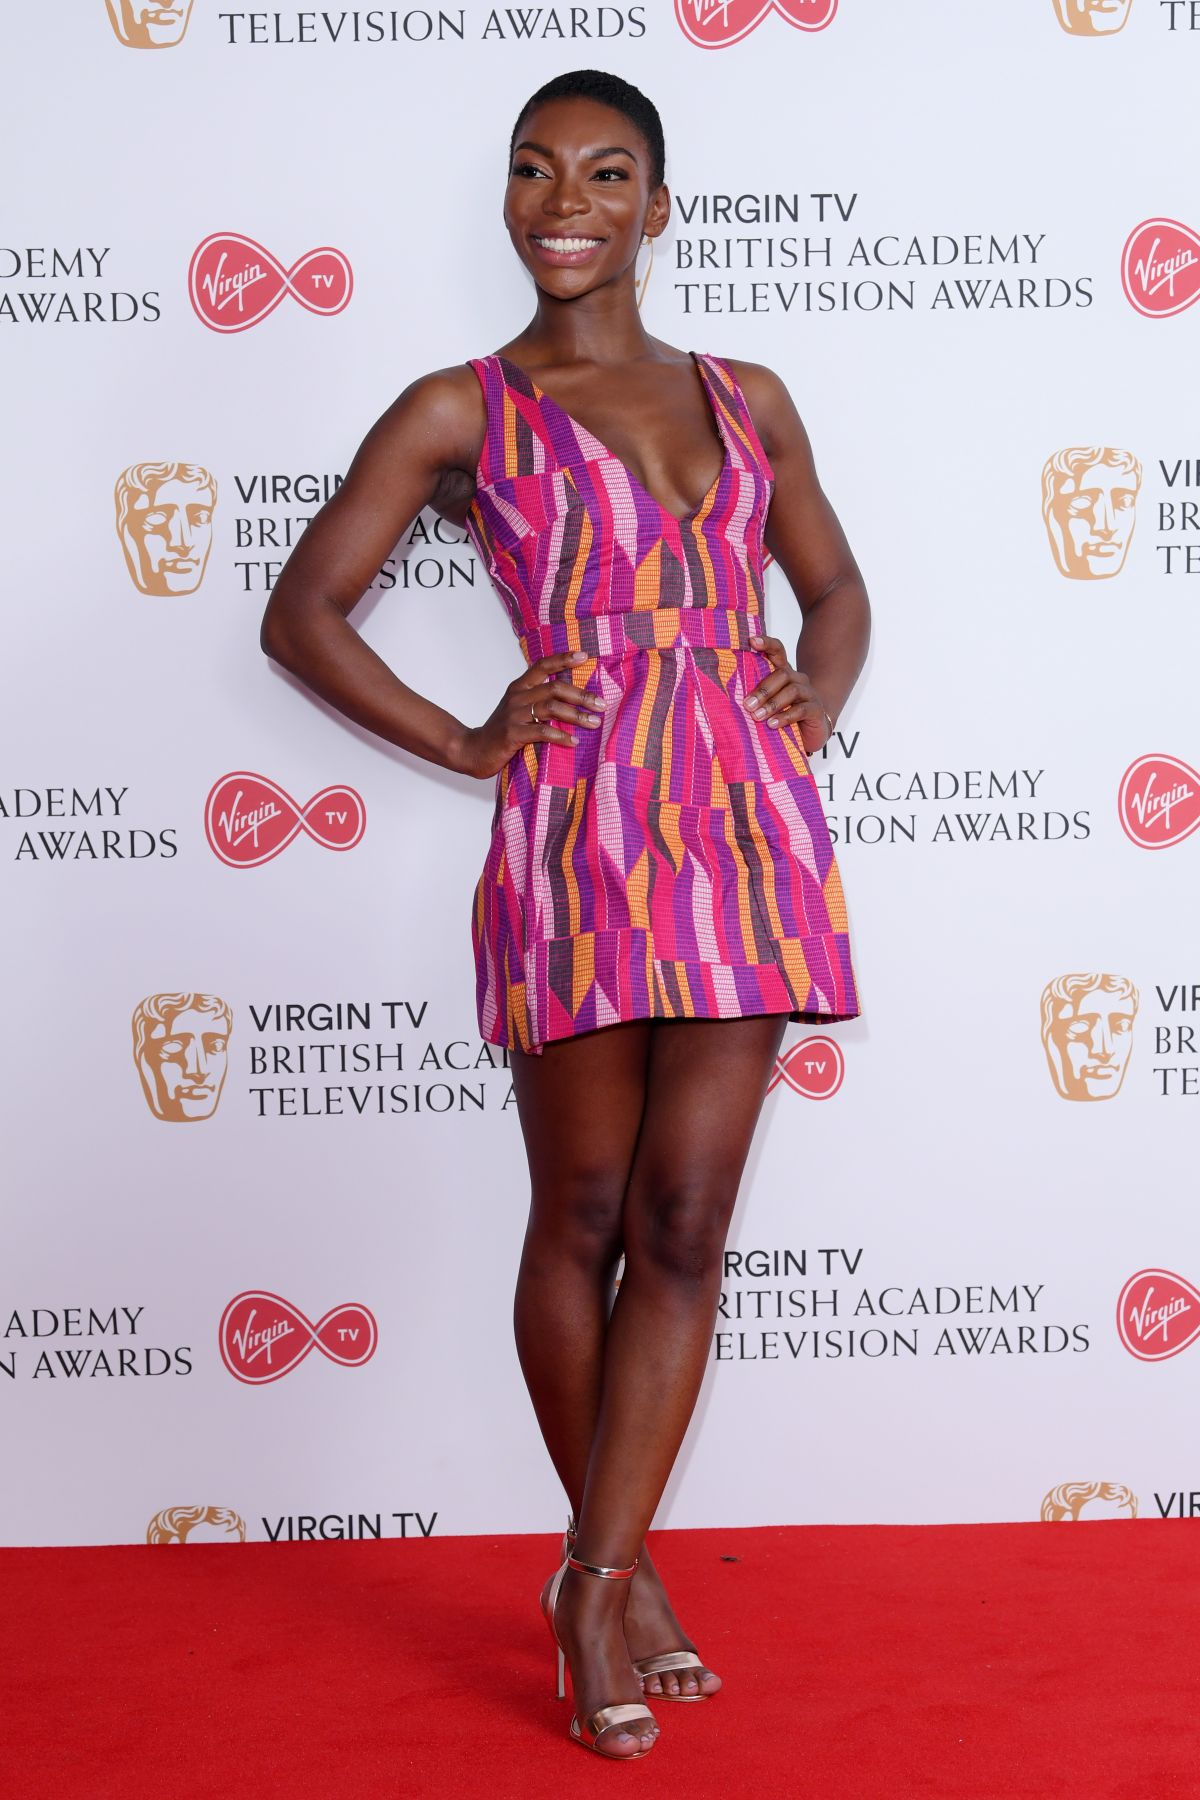 MICHAELA COEL at 2017 British Academy Television Awards in London 05/14/2017